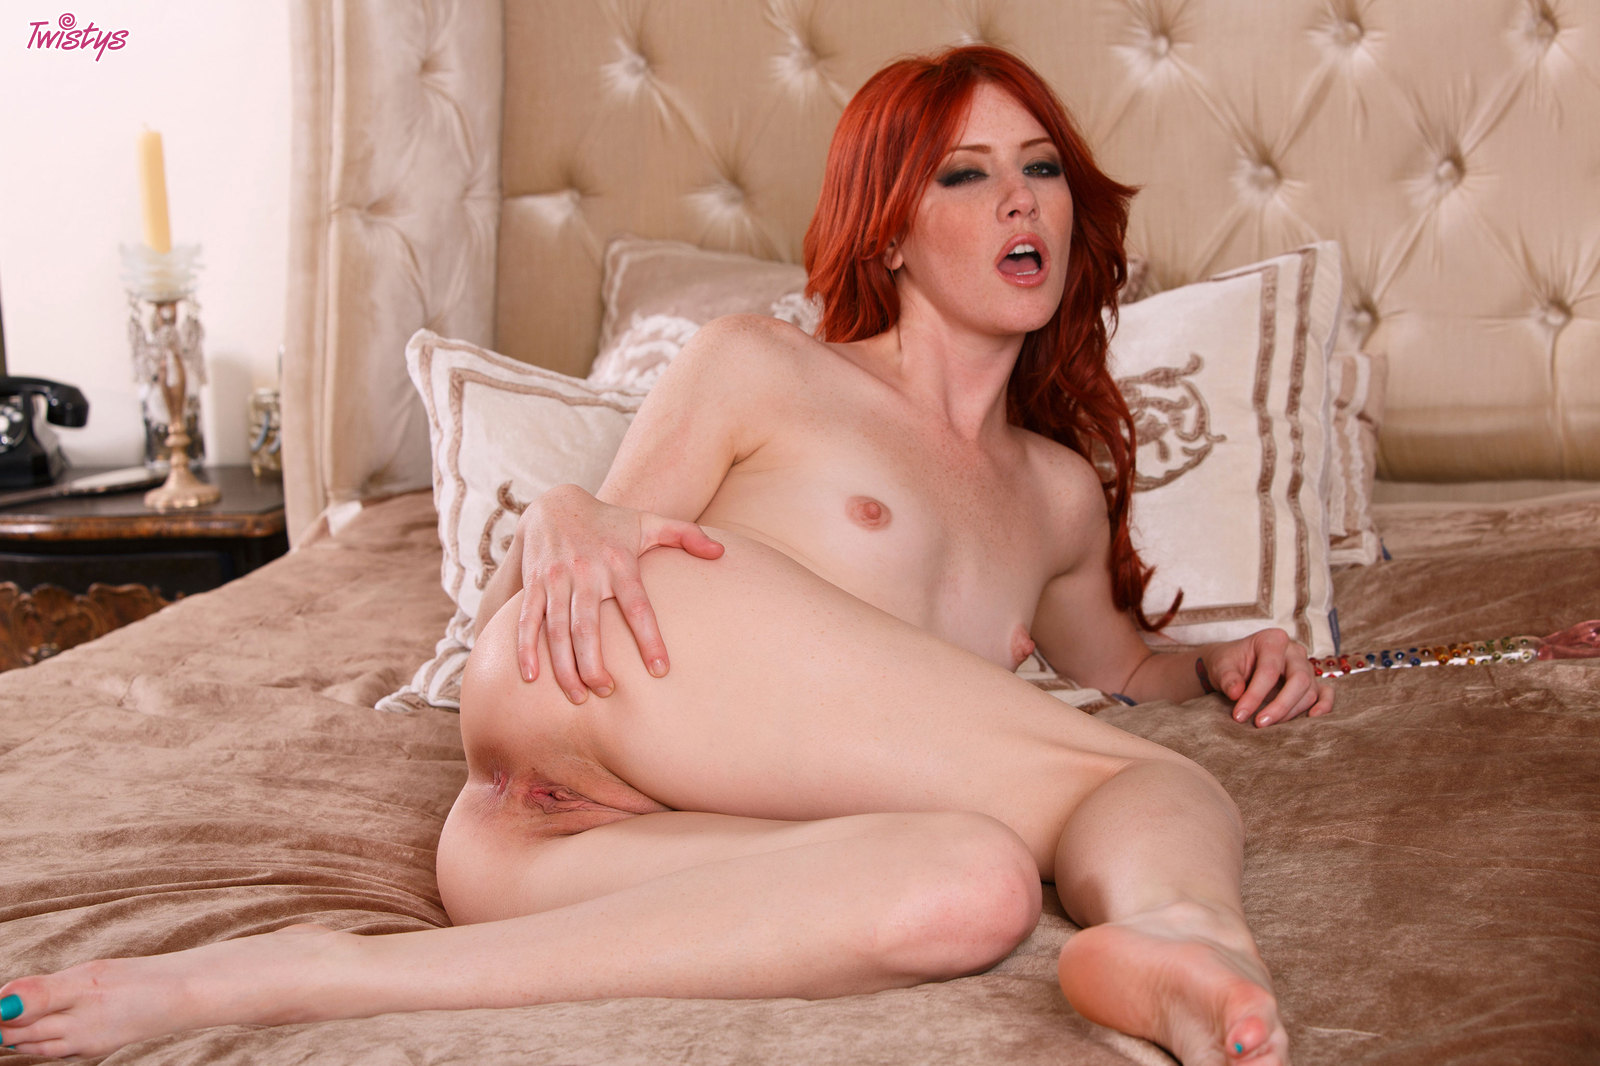 elle alexandra takes her favorite toy and plays with it